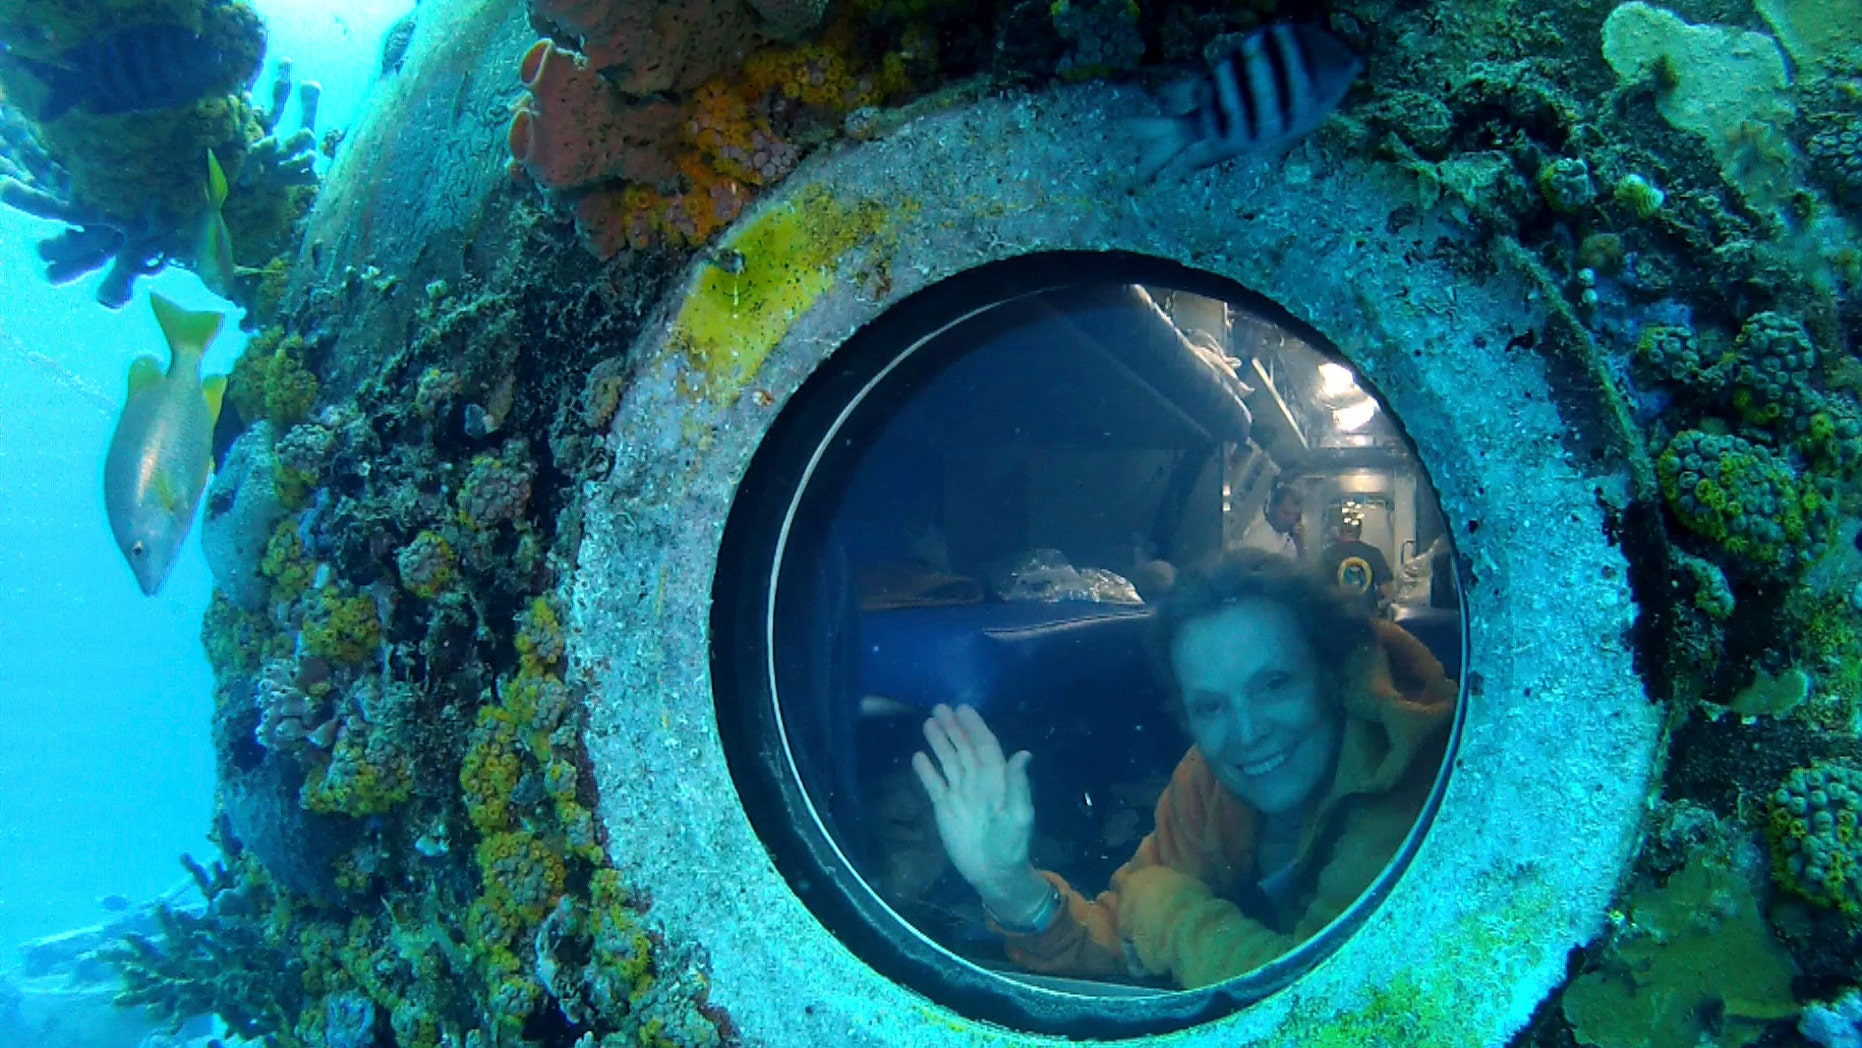 Photo released by One World One Ocean, Sylvia Earle looks out of a porthole from Aquarius, the undersea research laboratory in the Florida Keys. Aquarius is part of NOAA's National Undersea Research Program, but the budget has been cut by the federal government.